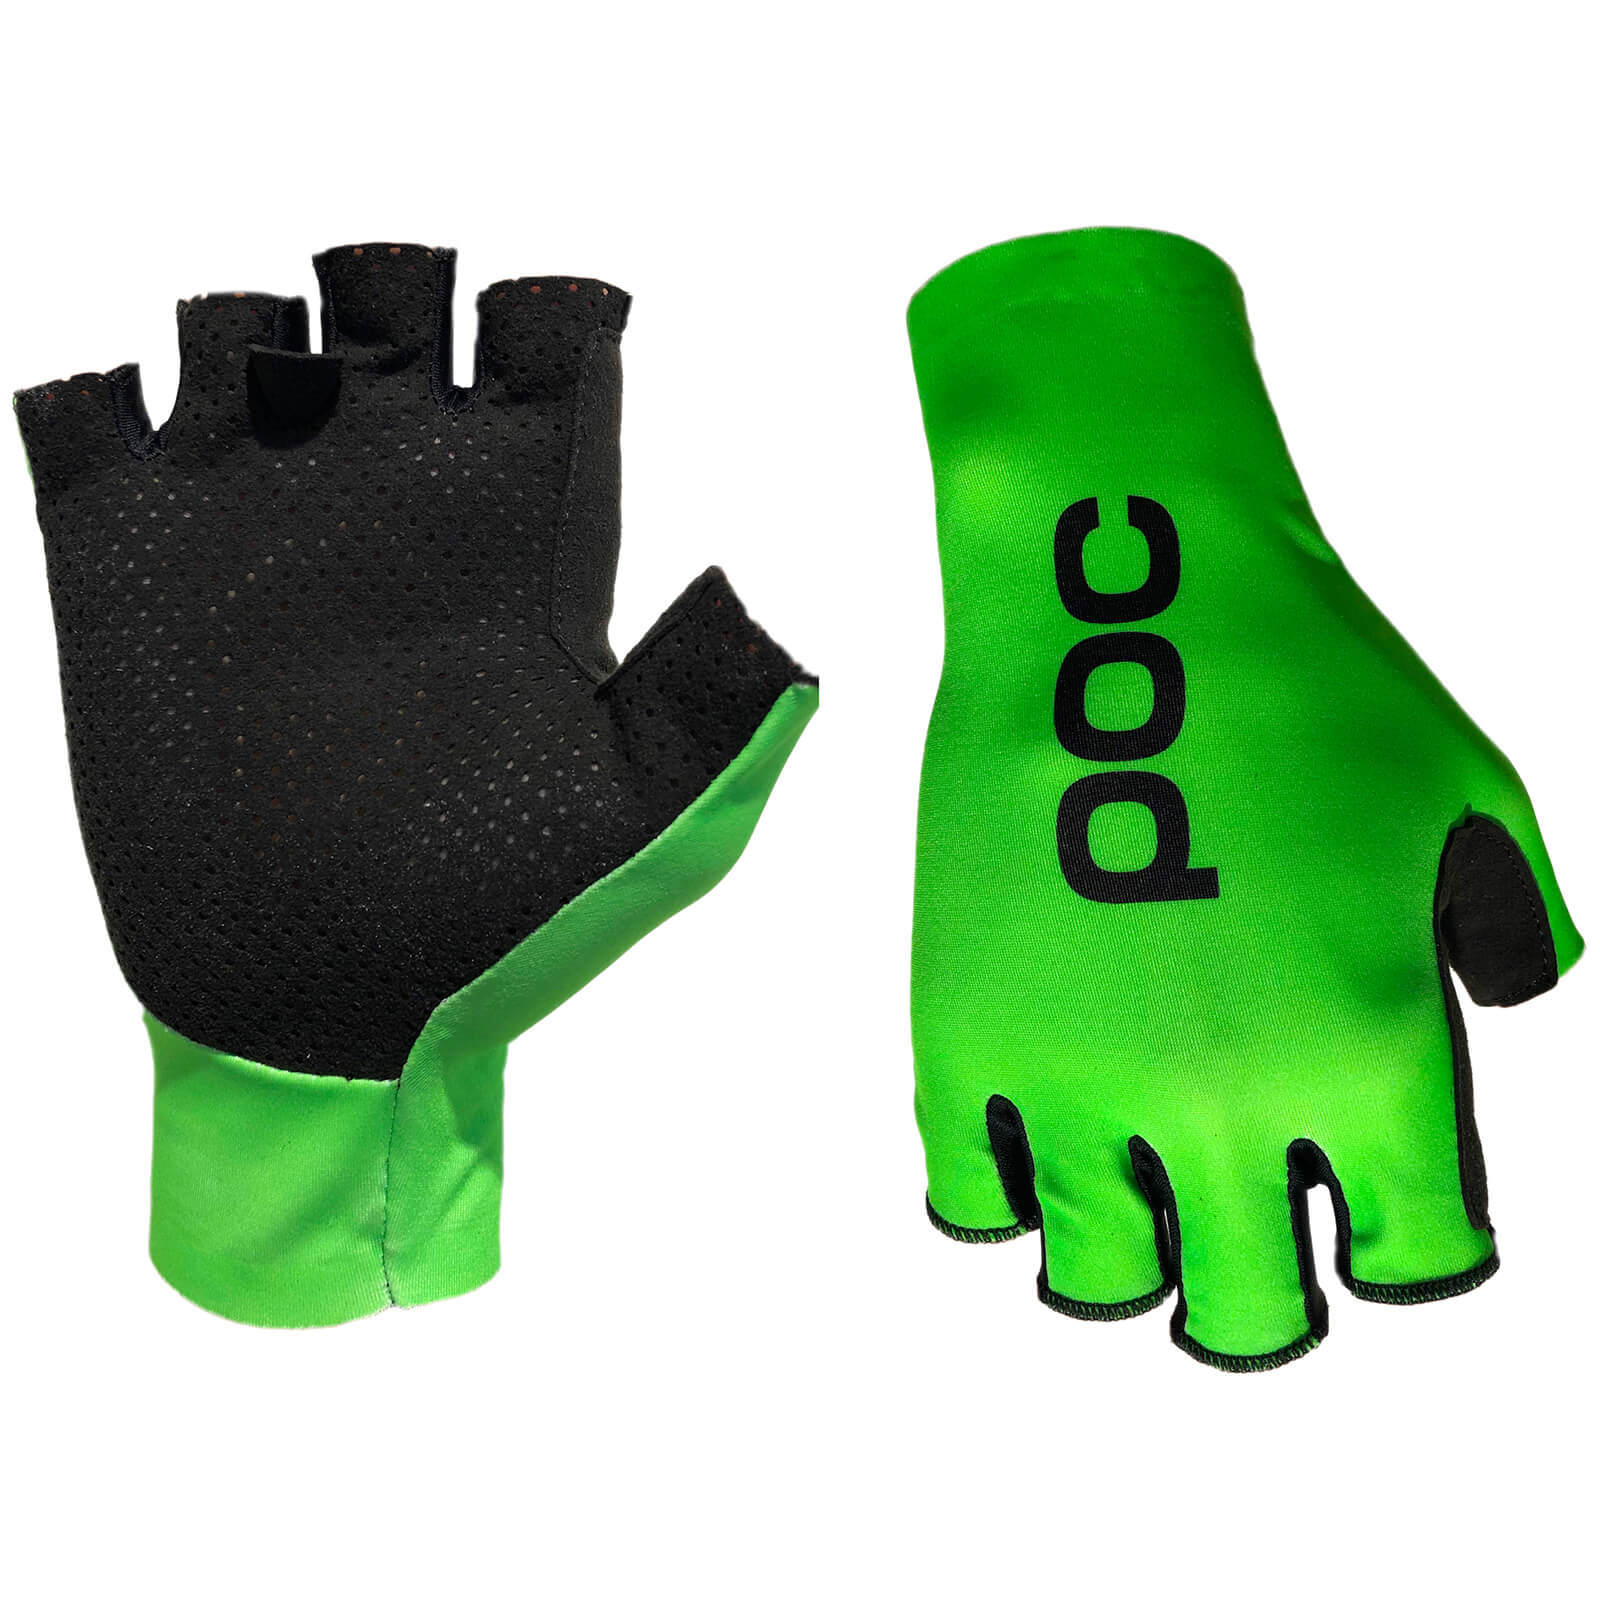 POC Team Education First - Drapac P/B Cannondale Gloves - Cannondale Green